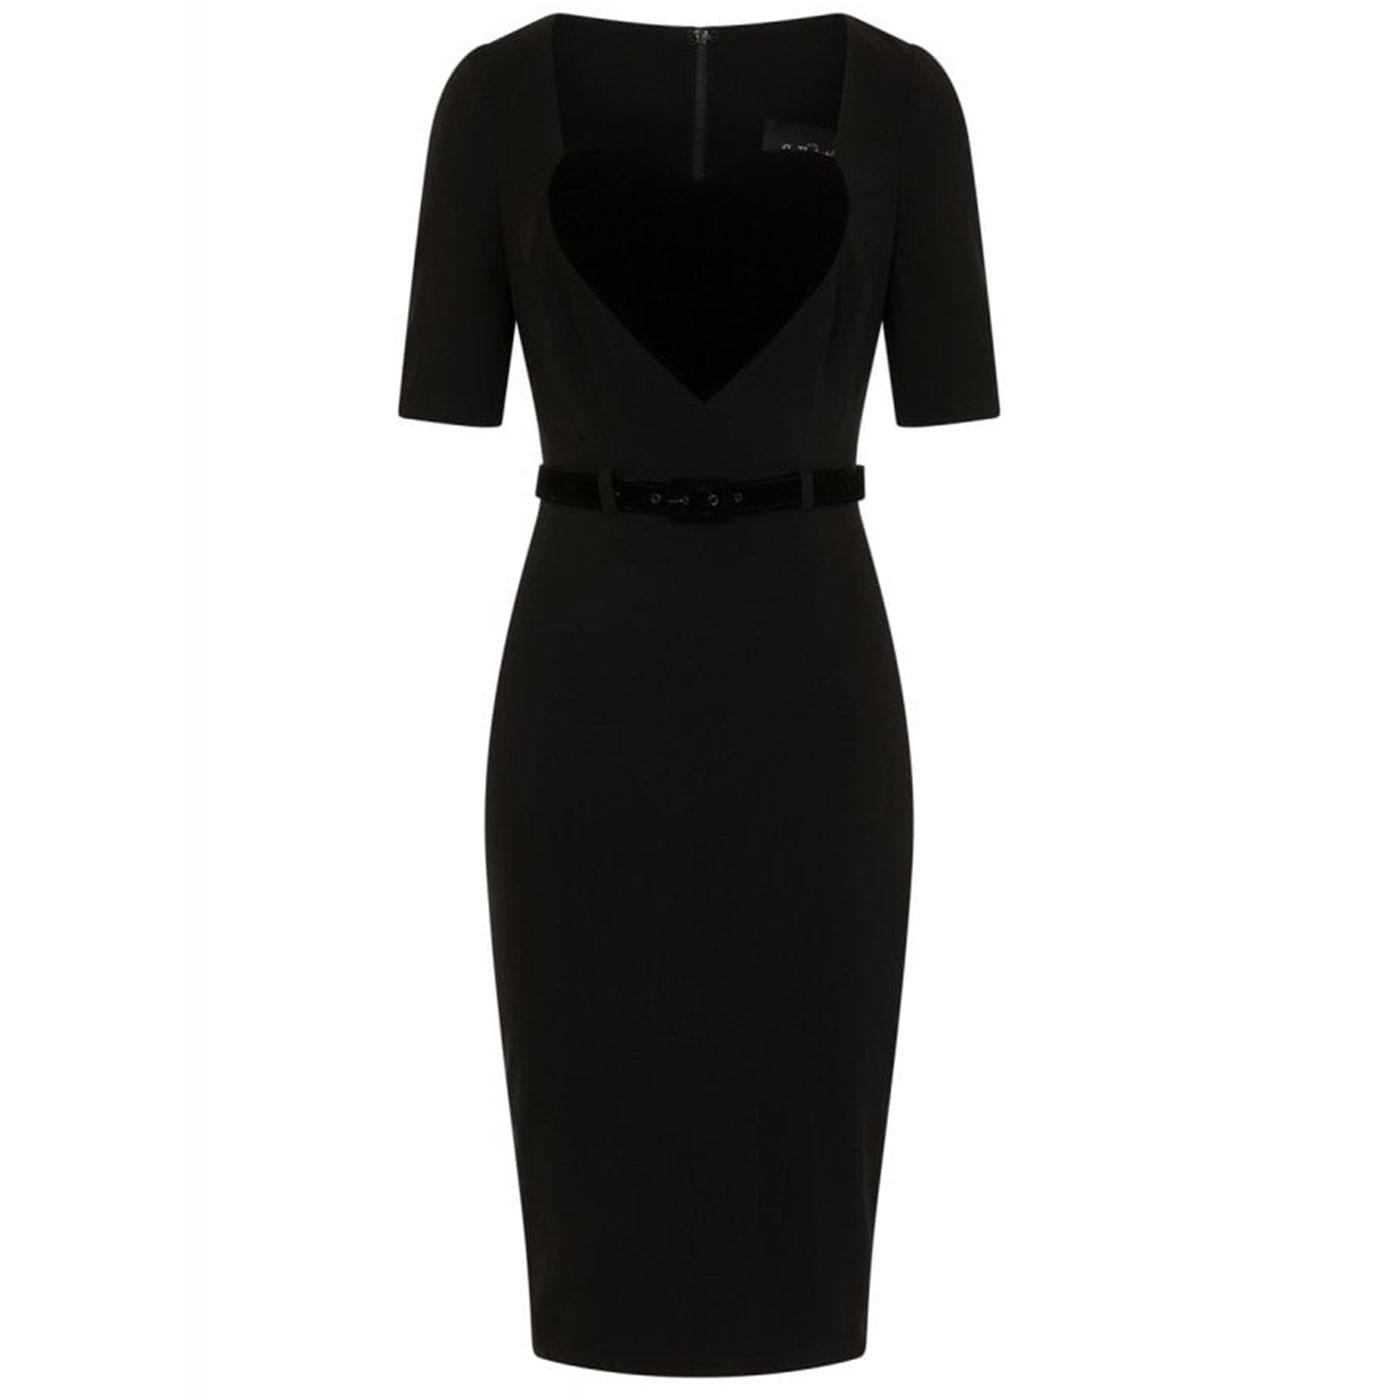 Ophelia COLLECTIF 50s Heart Applique Wiggle Dress